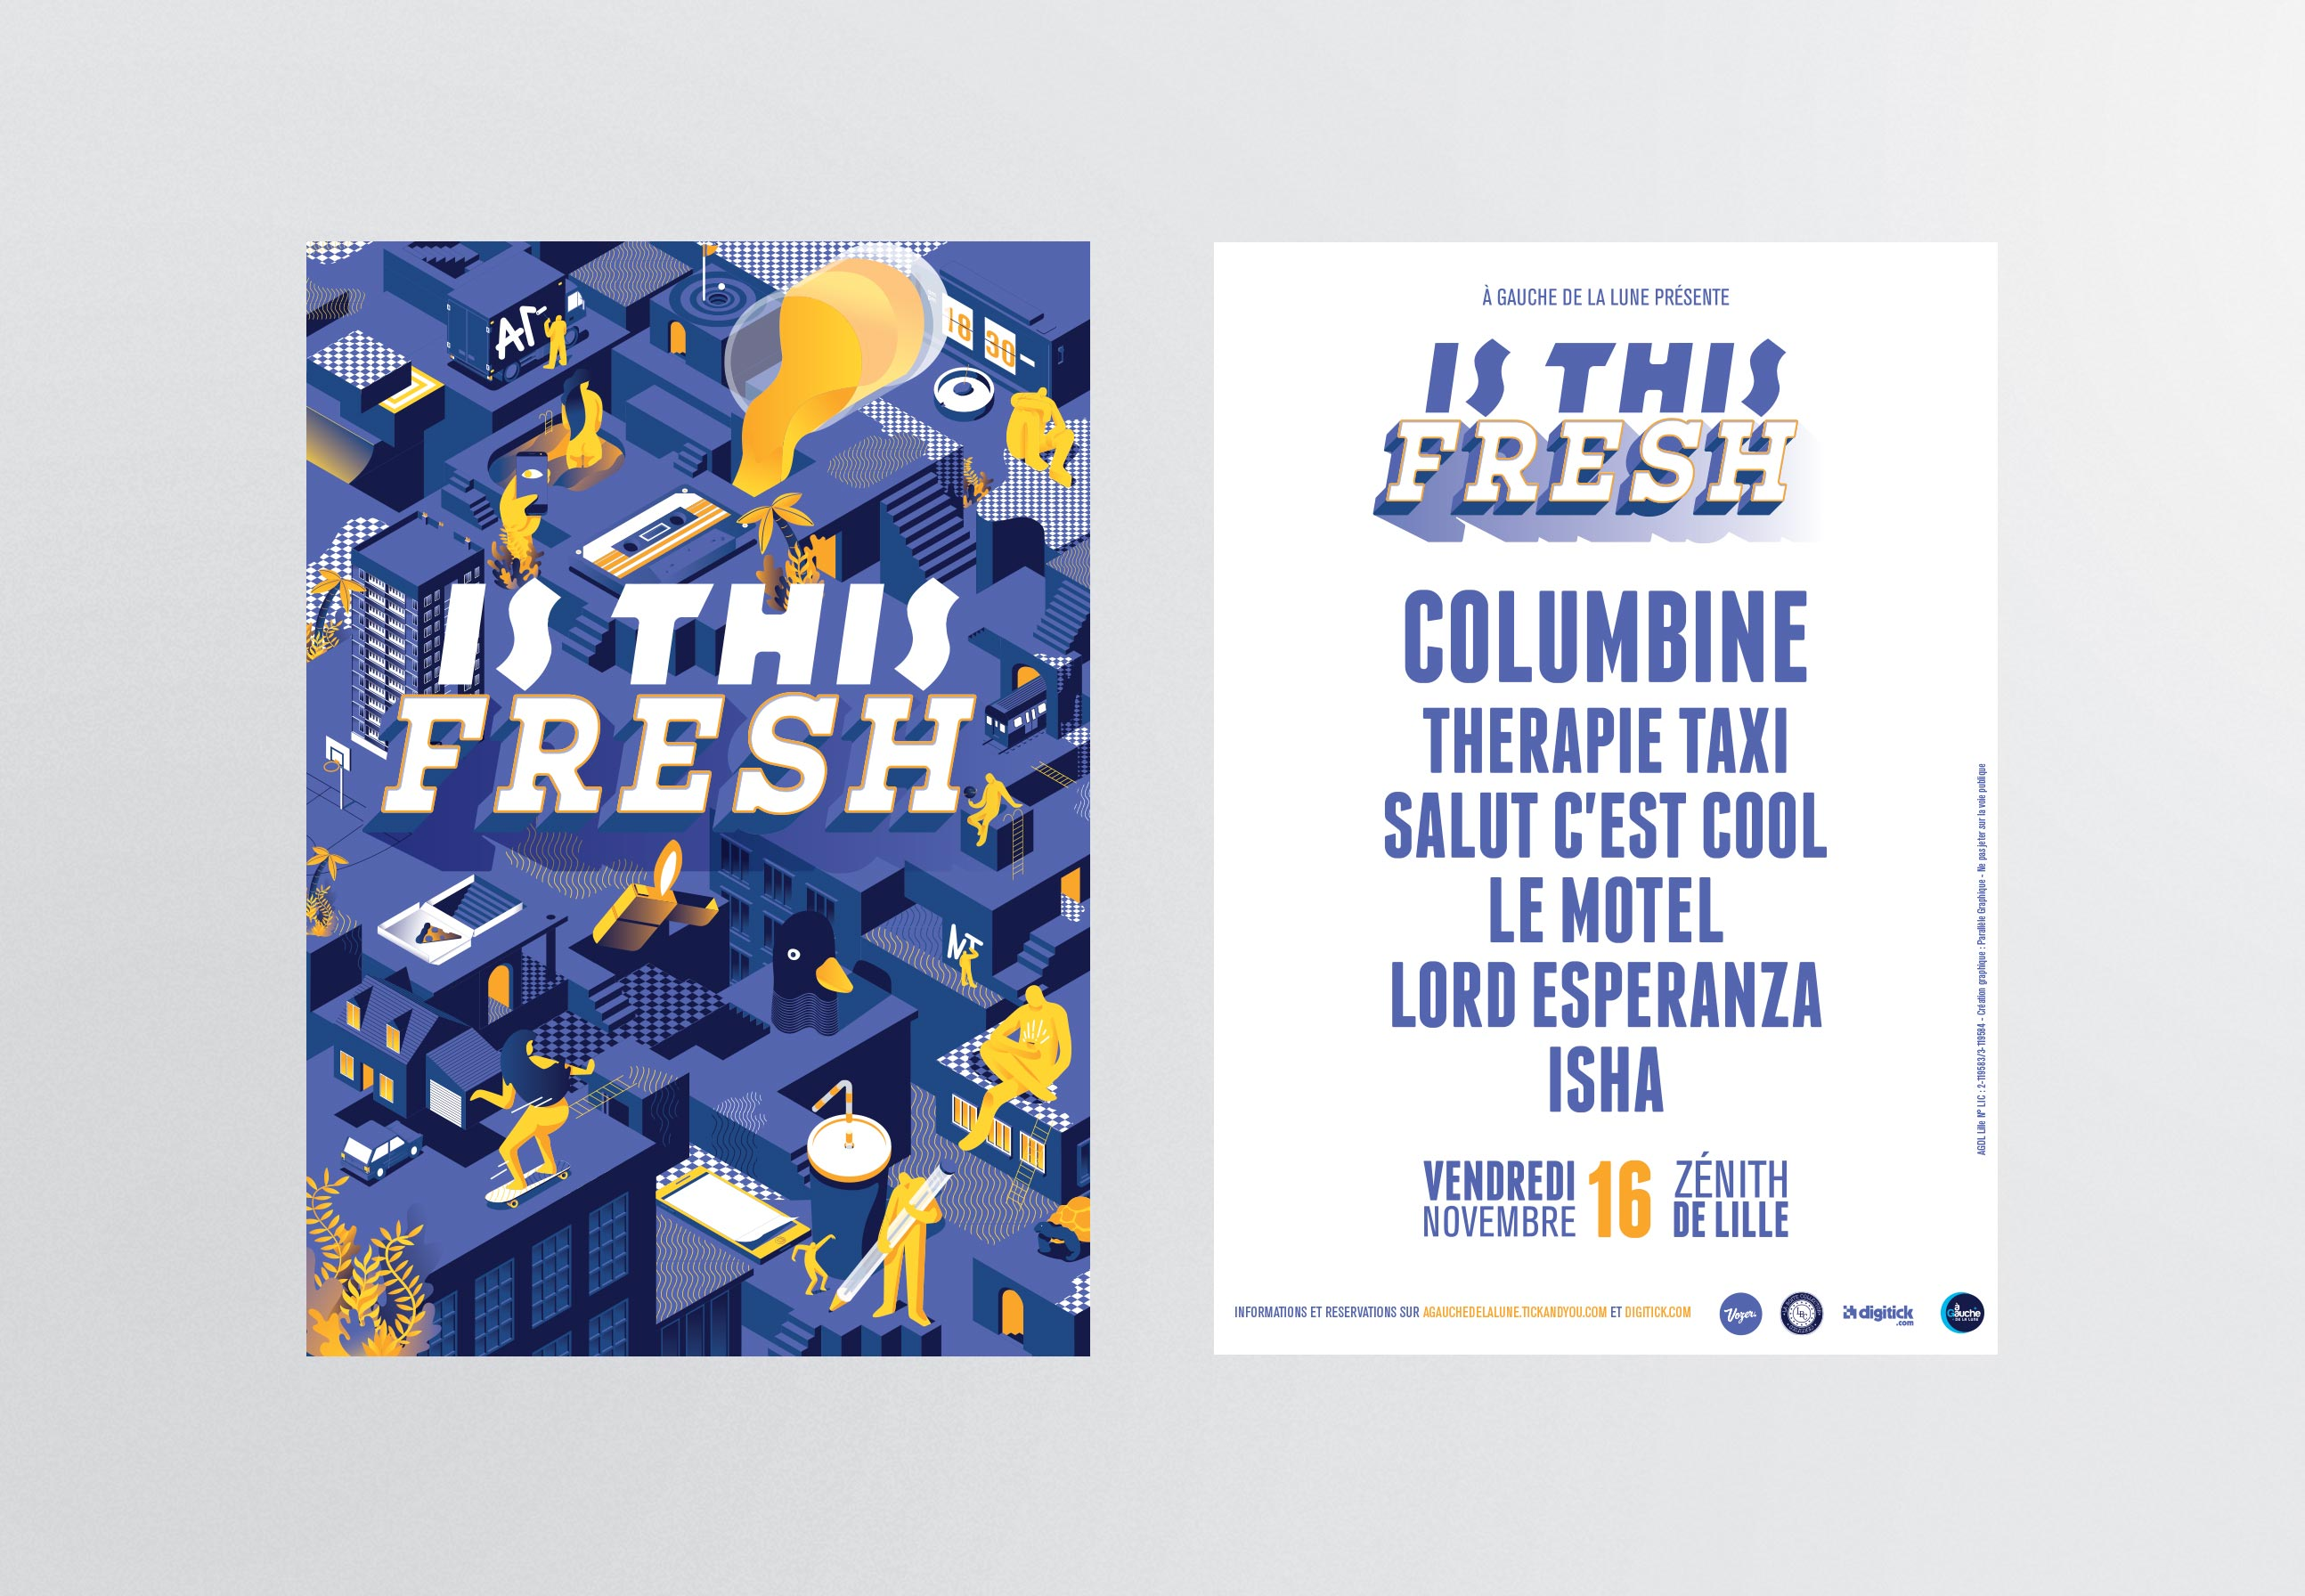 is_this_fresh_parallele_graphique_02